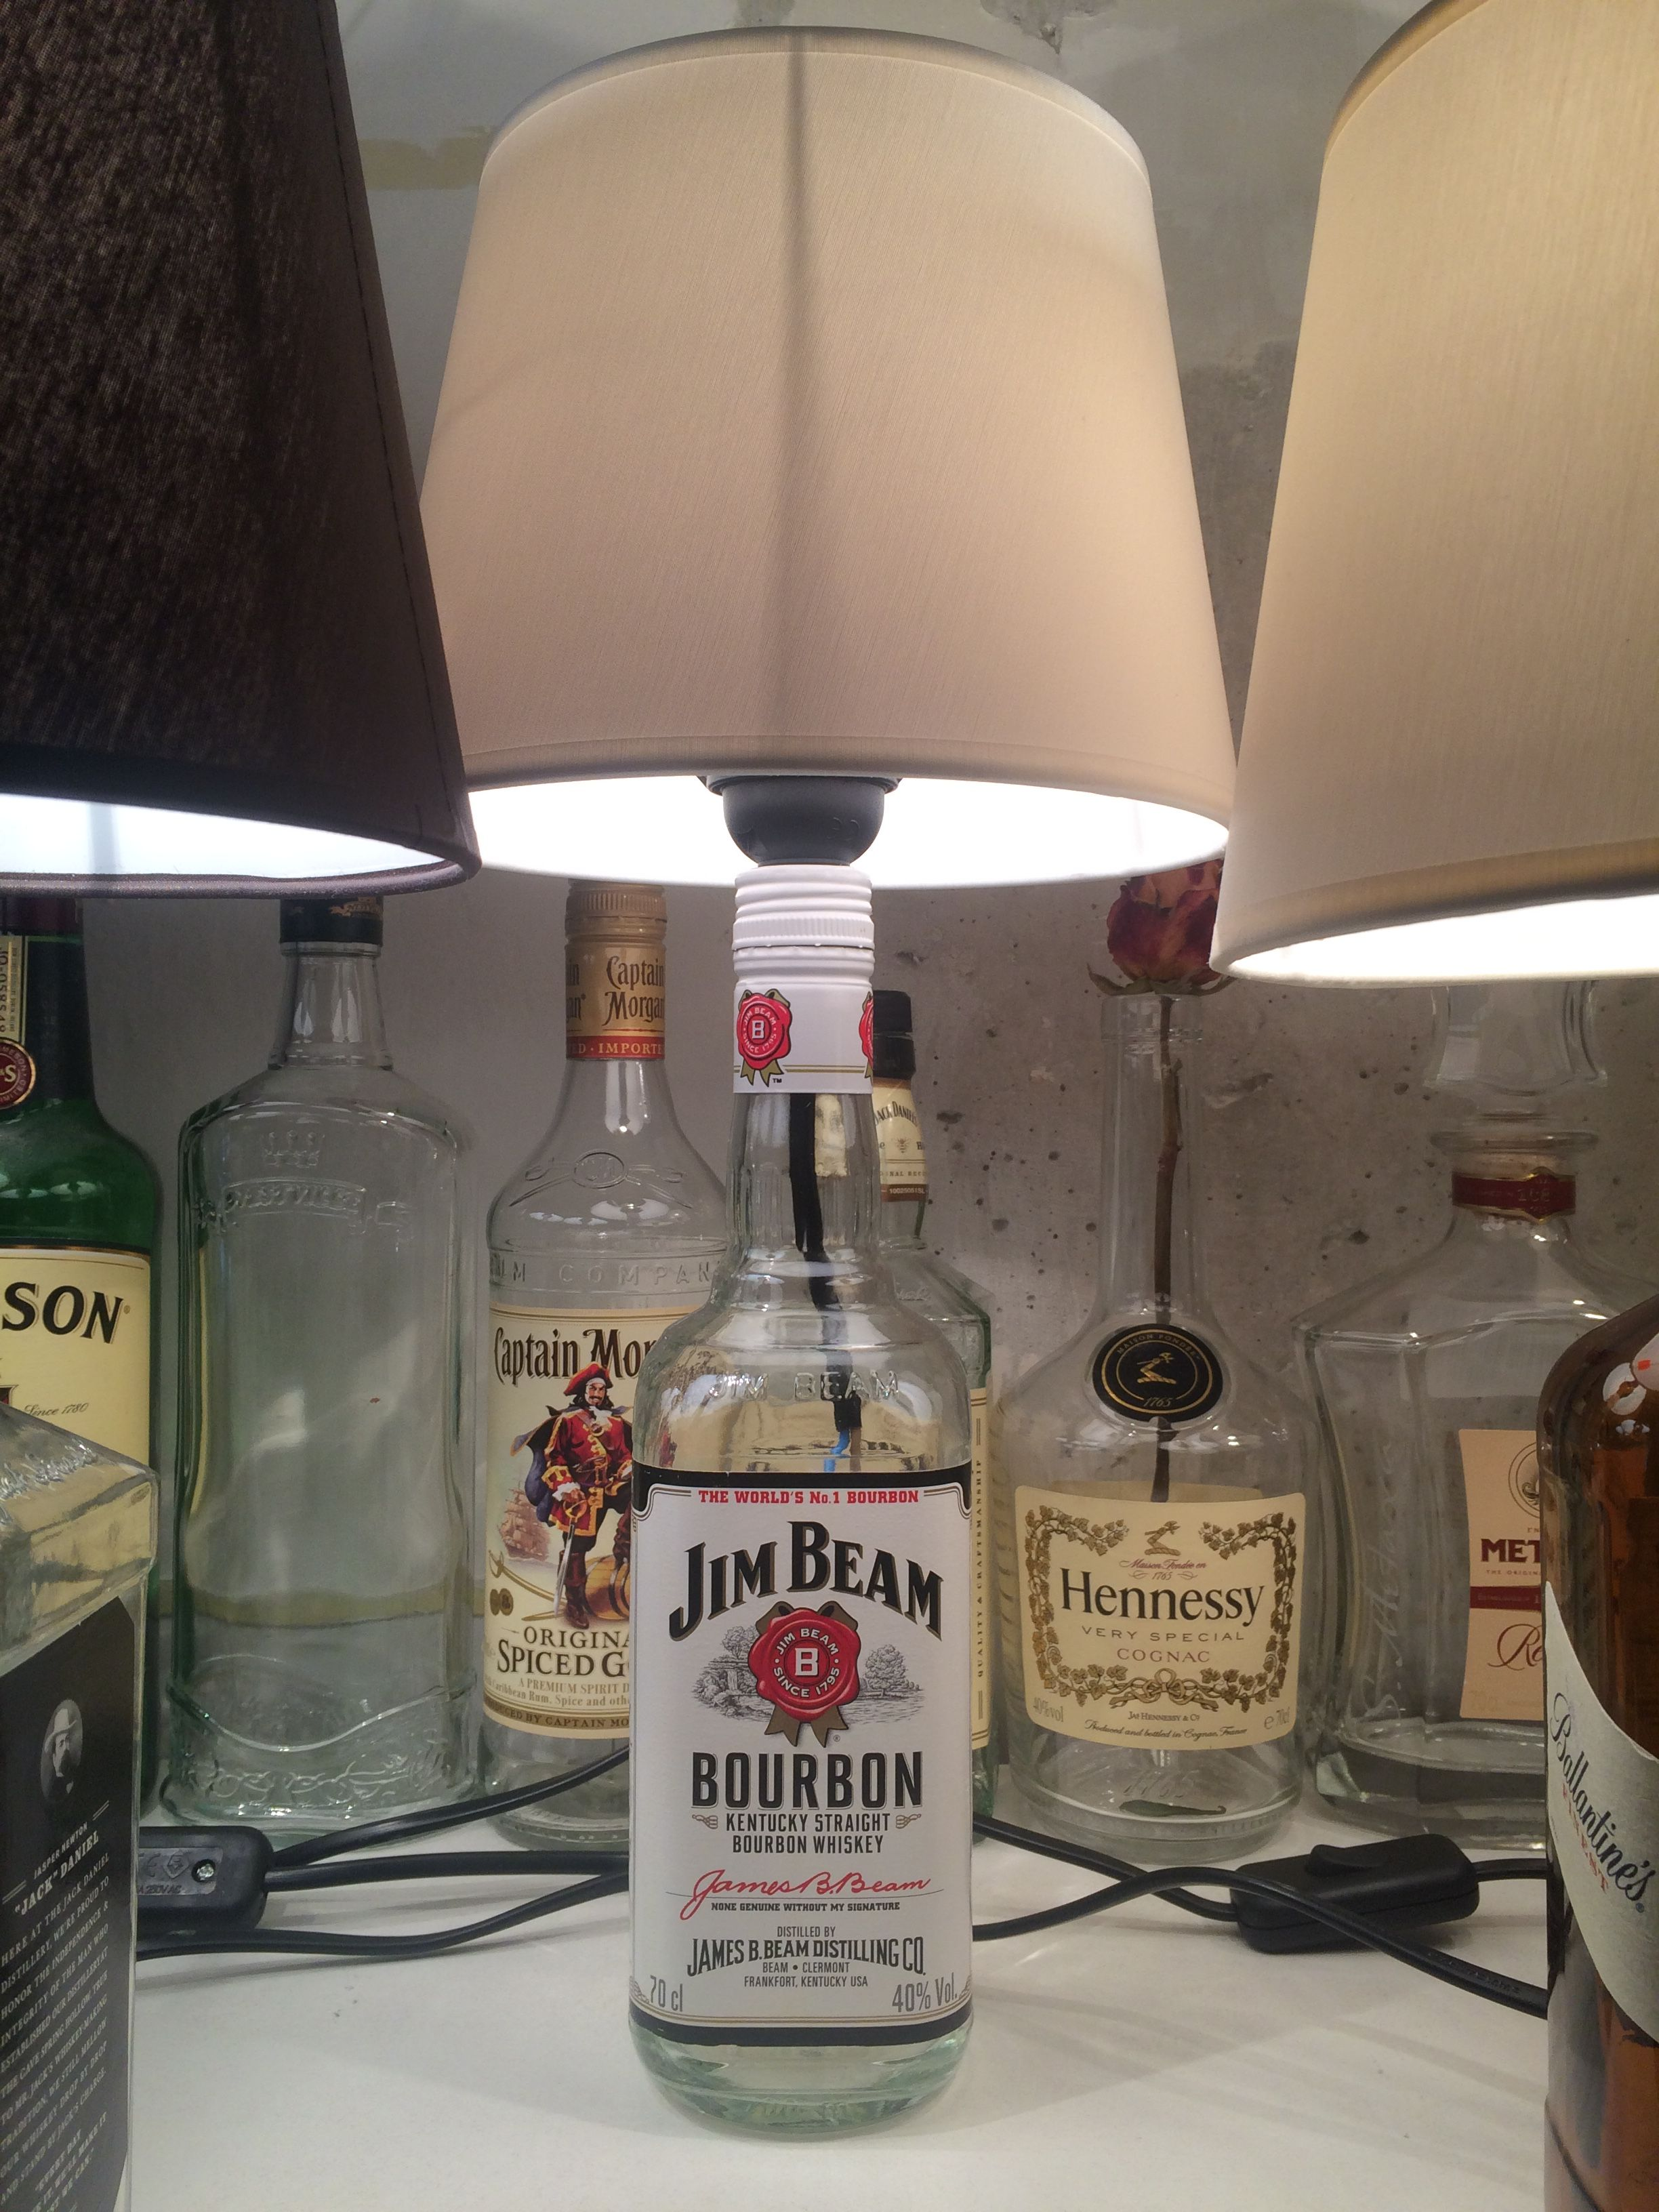 Diy Jim Beam Bottle Lamp Diy Bottle Lamp Mason Jar Lamp